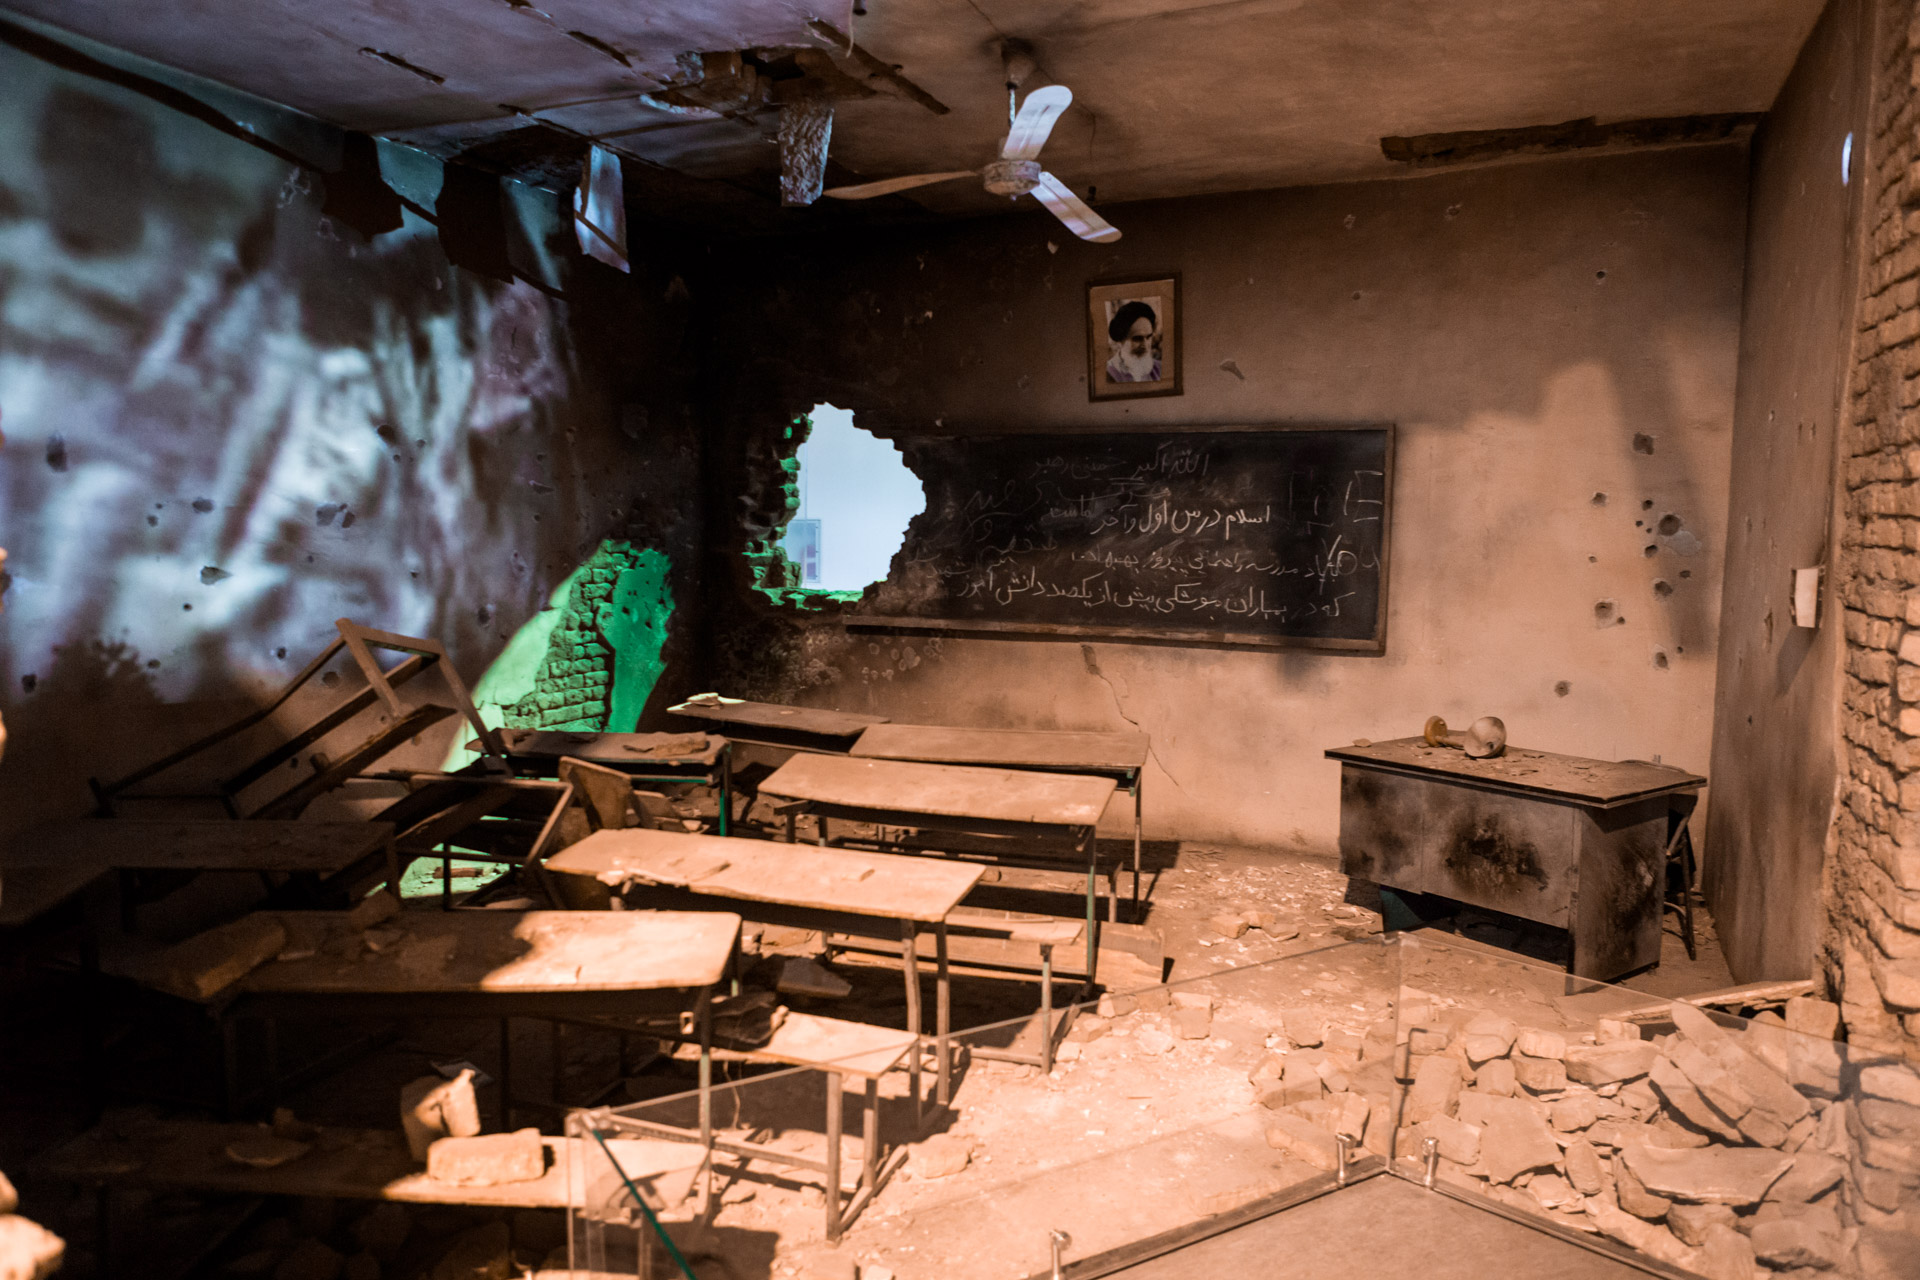 Devastated by Iraqi bombs, an old Iranian classroom has been set up, including a video projection on the left wall.